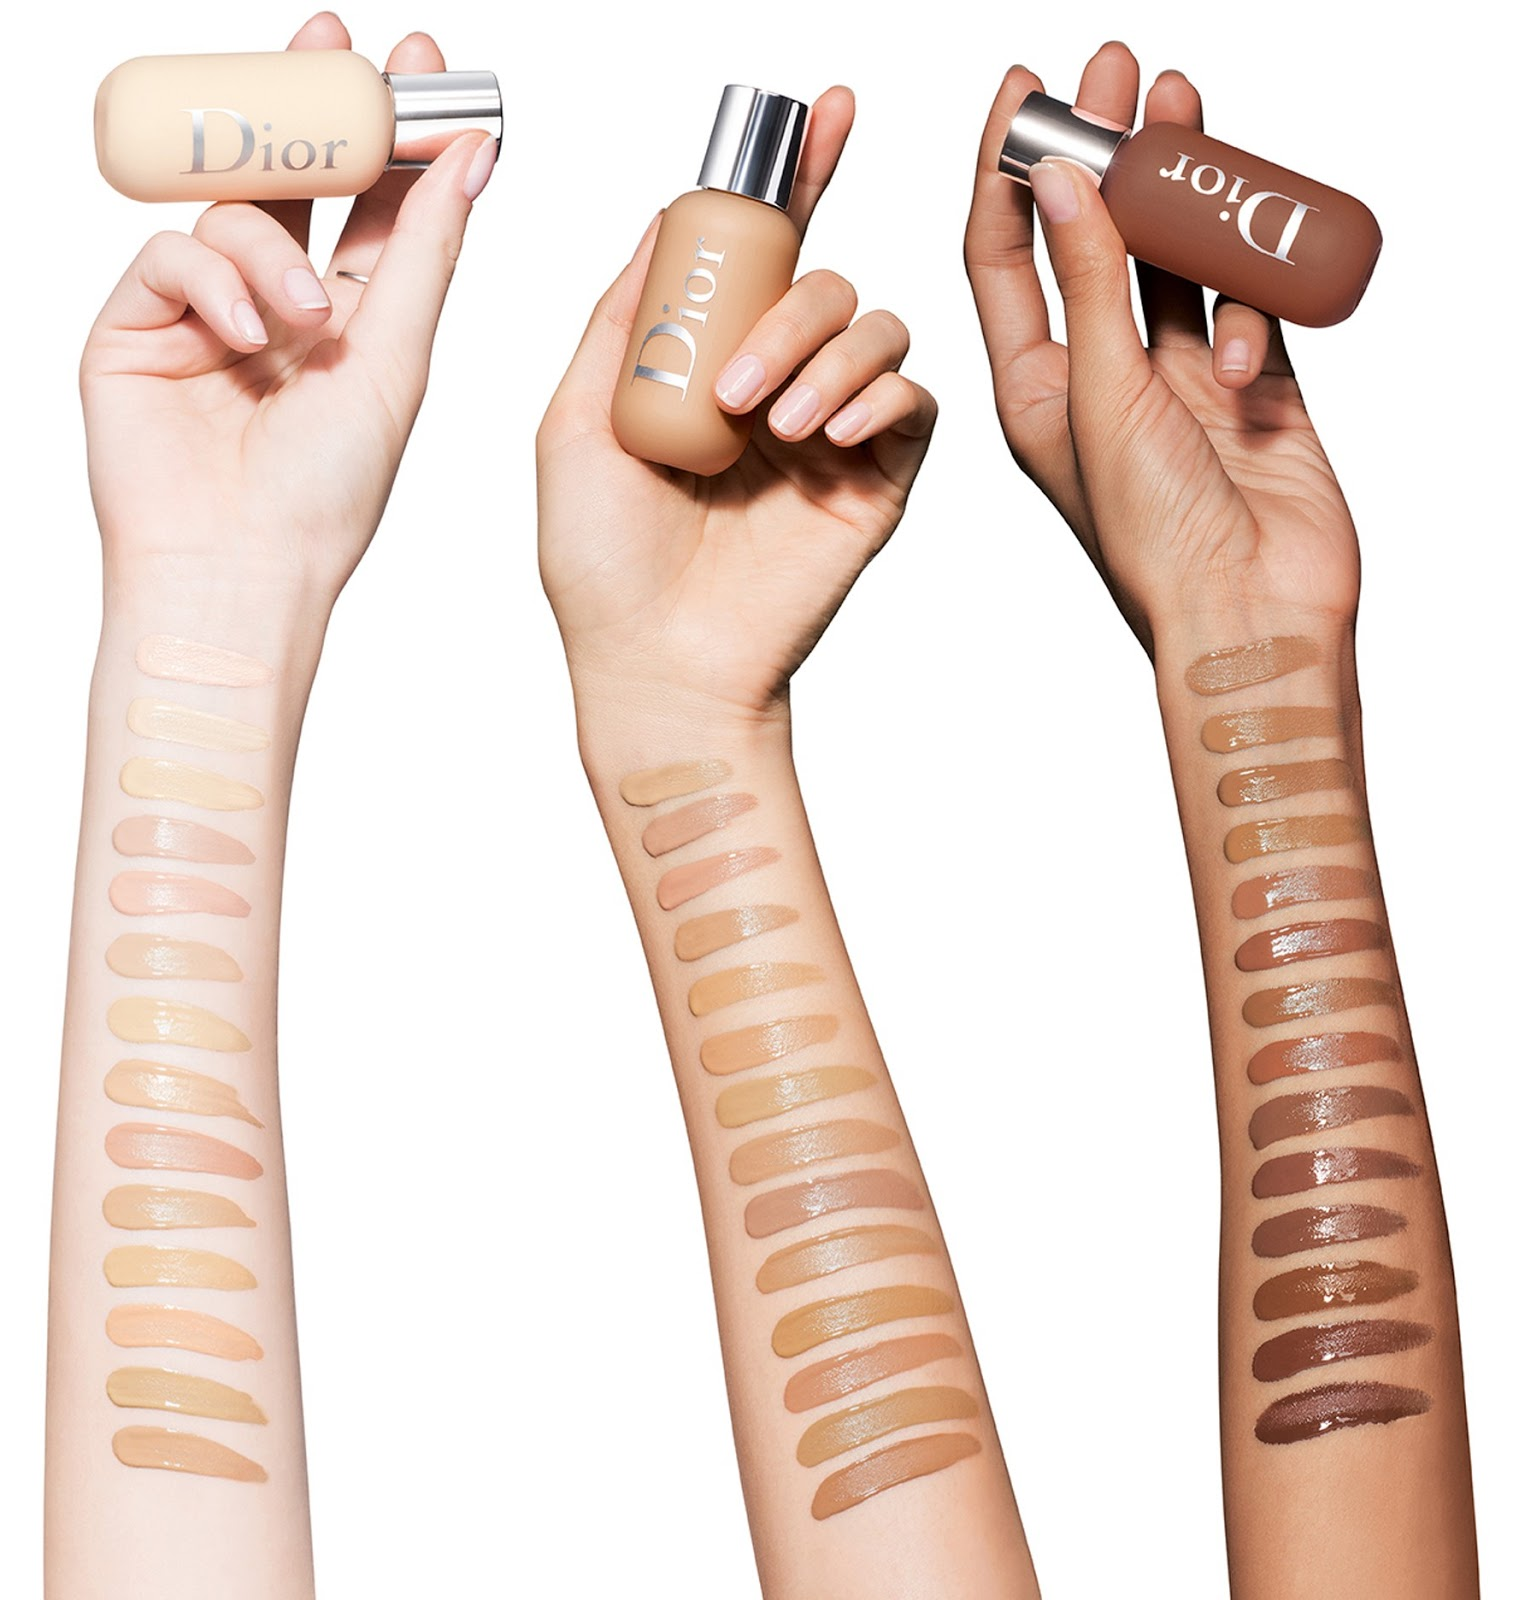 DIOR-BACKSTAGE-FACE-BODY-FOUNDATION-SWATCH